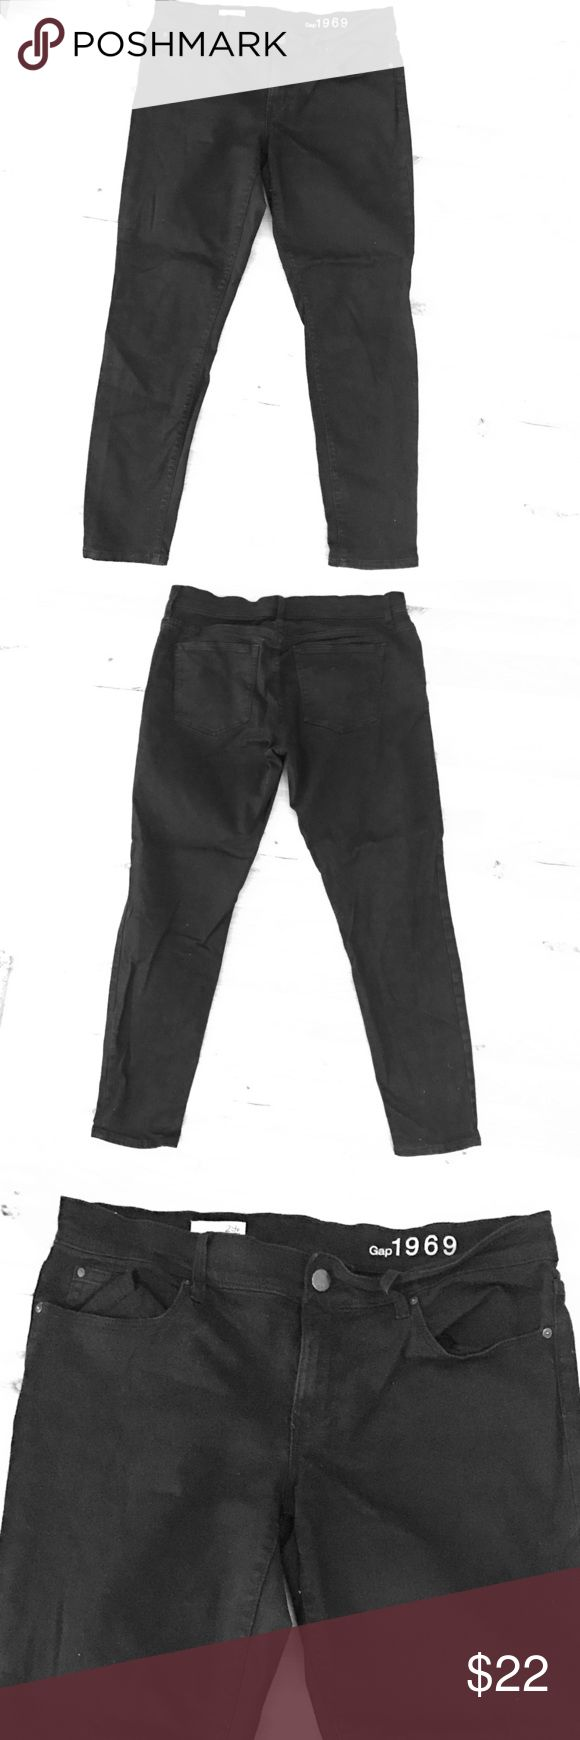 Gap Legging Jean 1969 fit. 29 petite legging jean Gap black jeans. Women's mid rise. Like new. Super comfortable. GAP Jeans Skinny